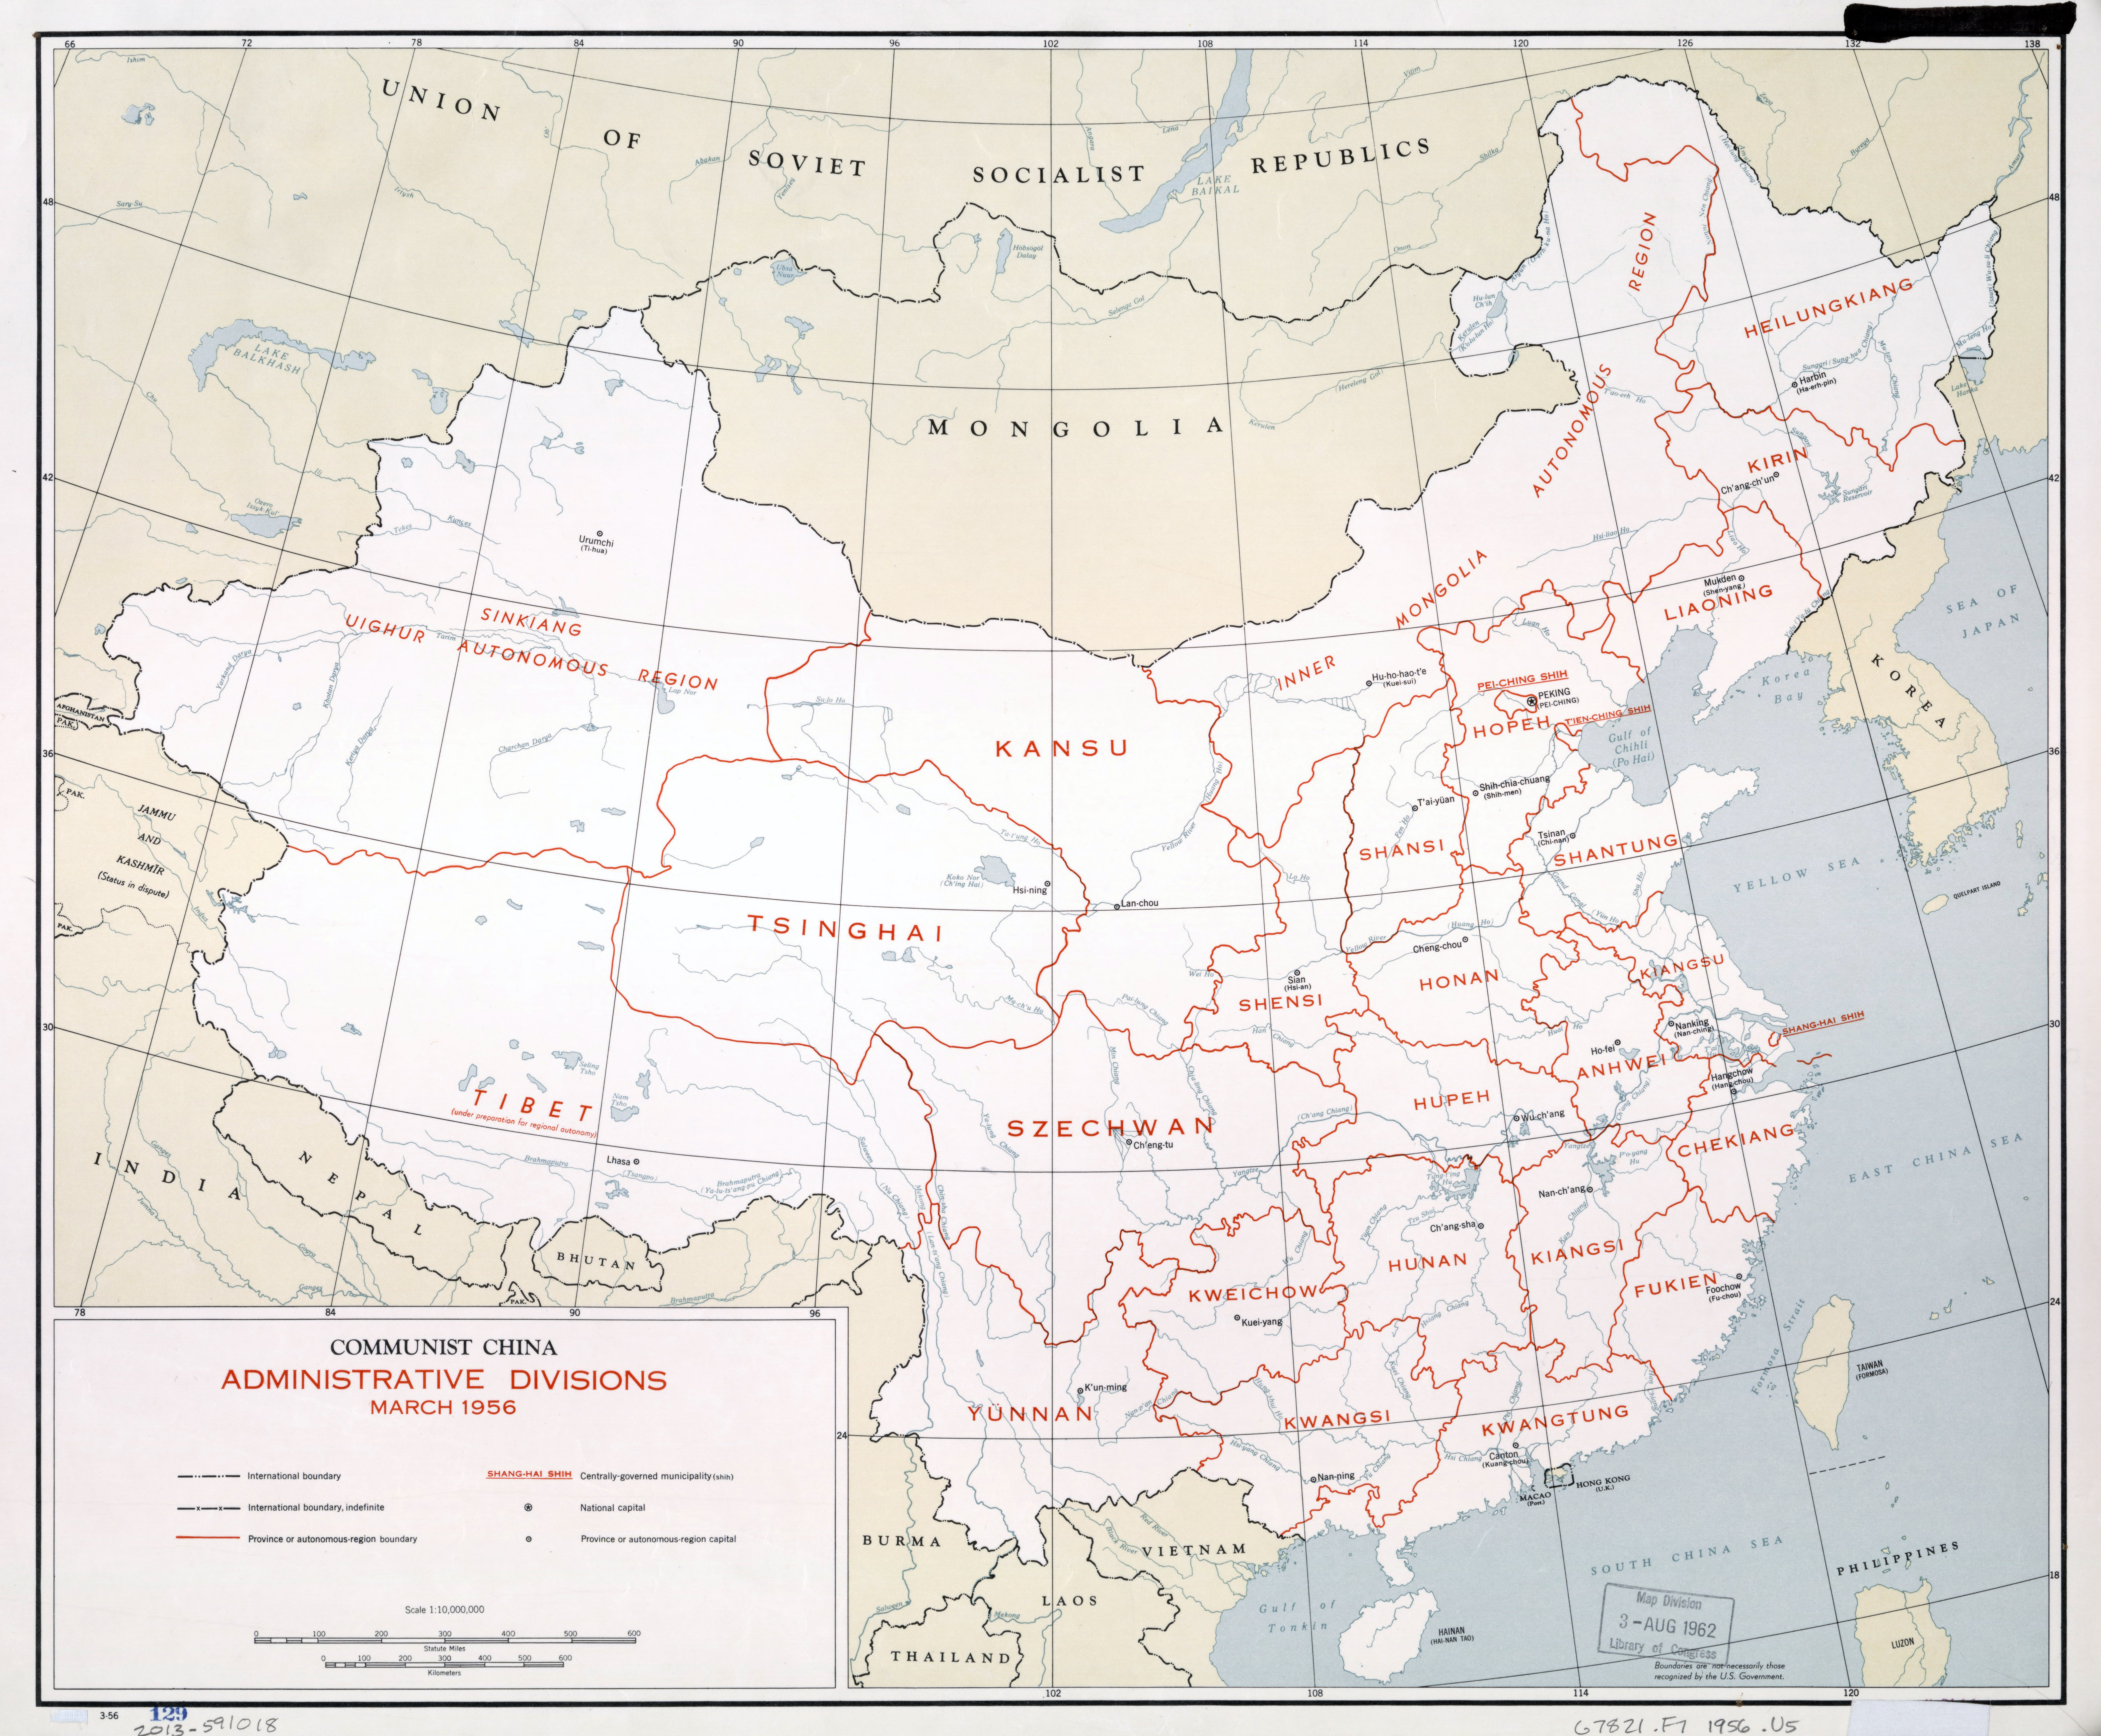 Large scale Communist China administrative divisions map 1956